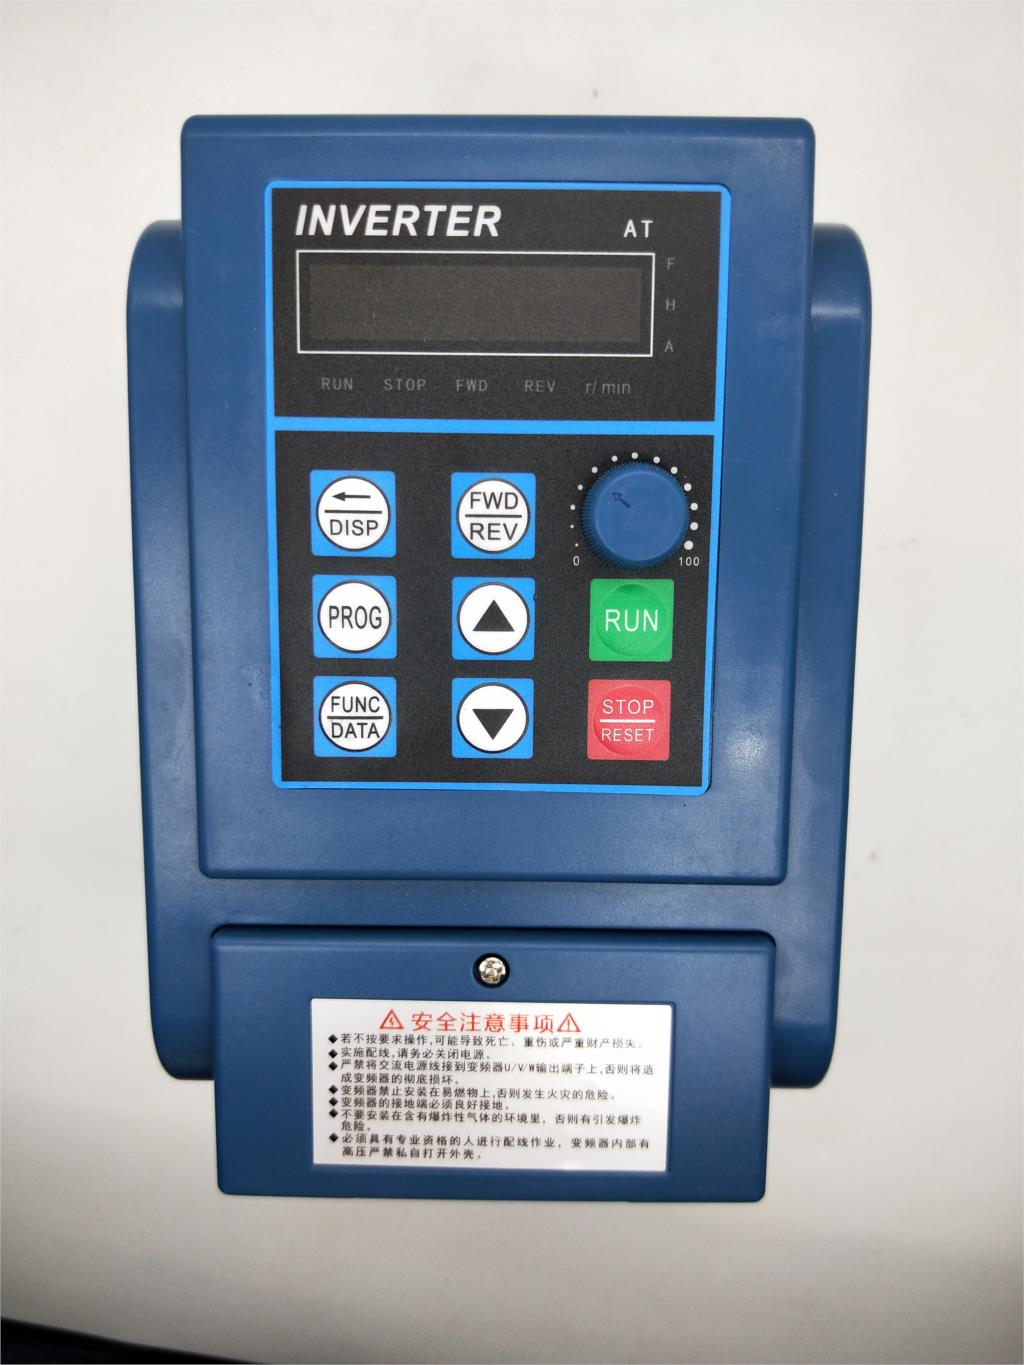 AC 380V 1.5kW/2.2KW/4KW/5.5KW/7.5KW Variable Frequency Drive 3 Phase Speed Controller Inverter Motor VFD Inverter